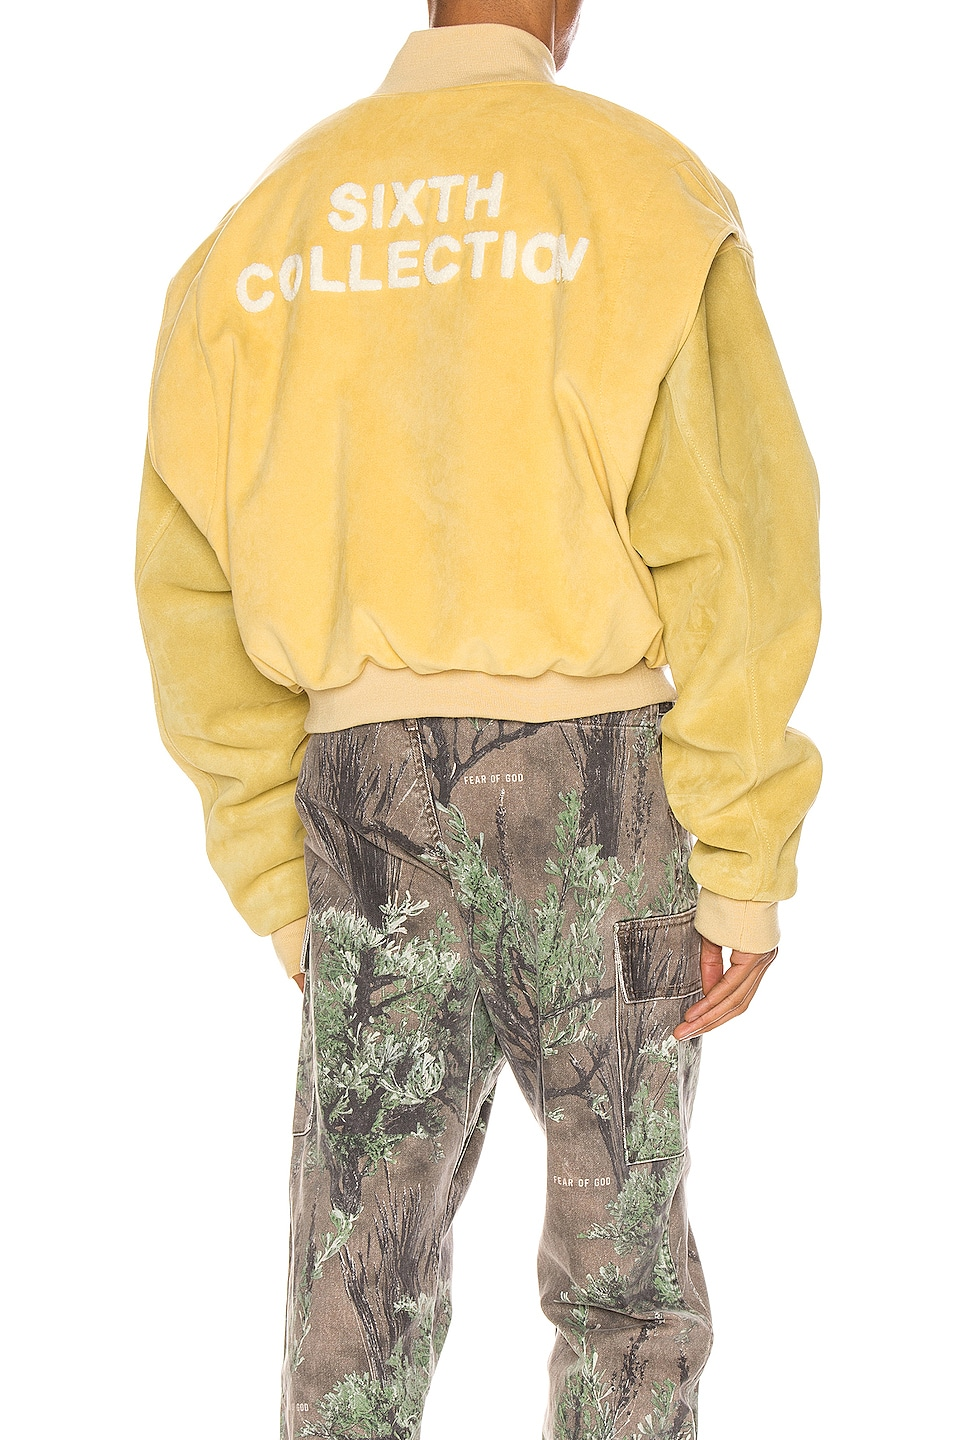 Image 1 of Fear of God 6th Collection Varsity Jacket in Garden Glove Yellow